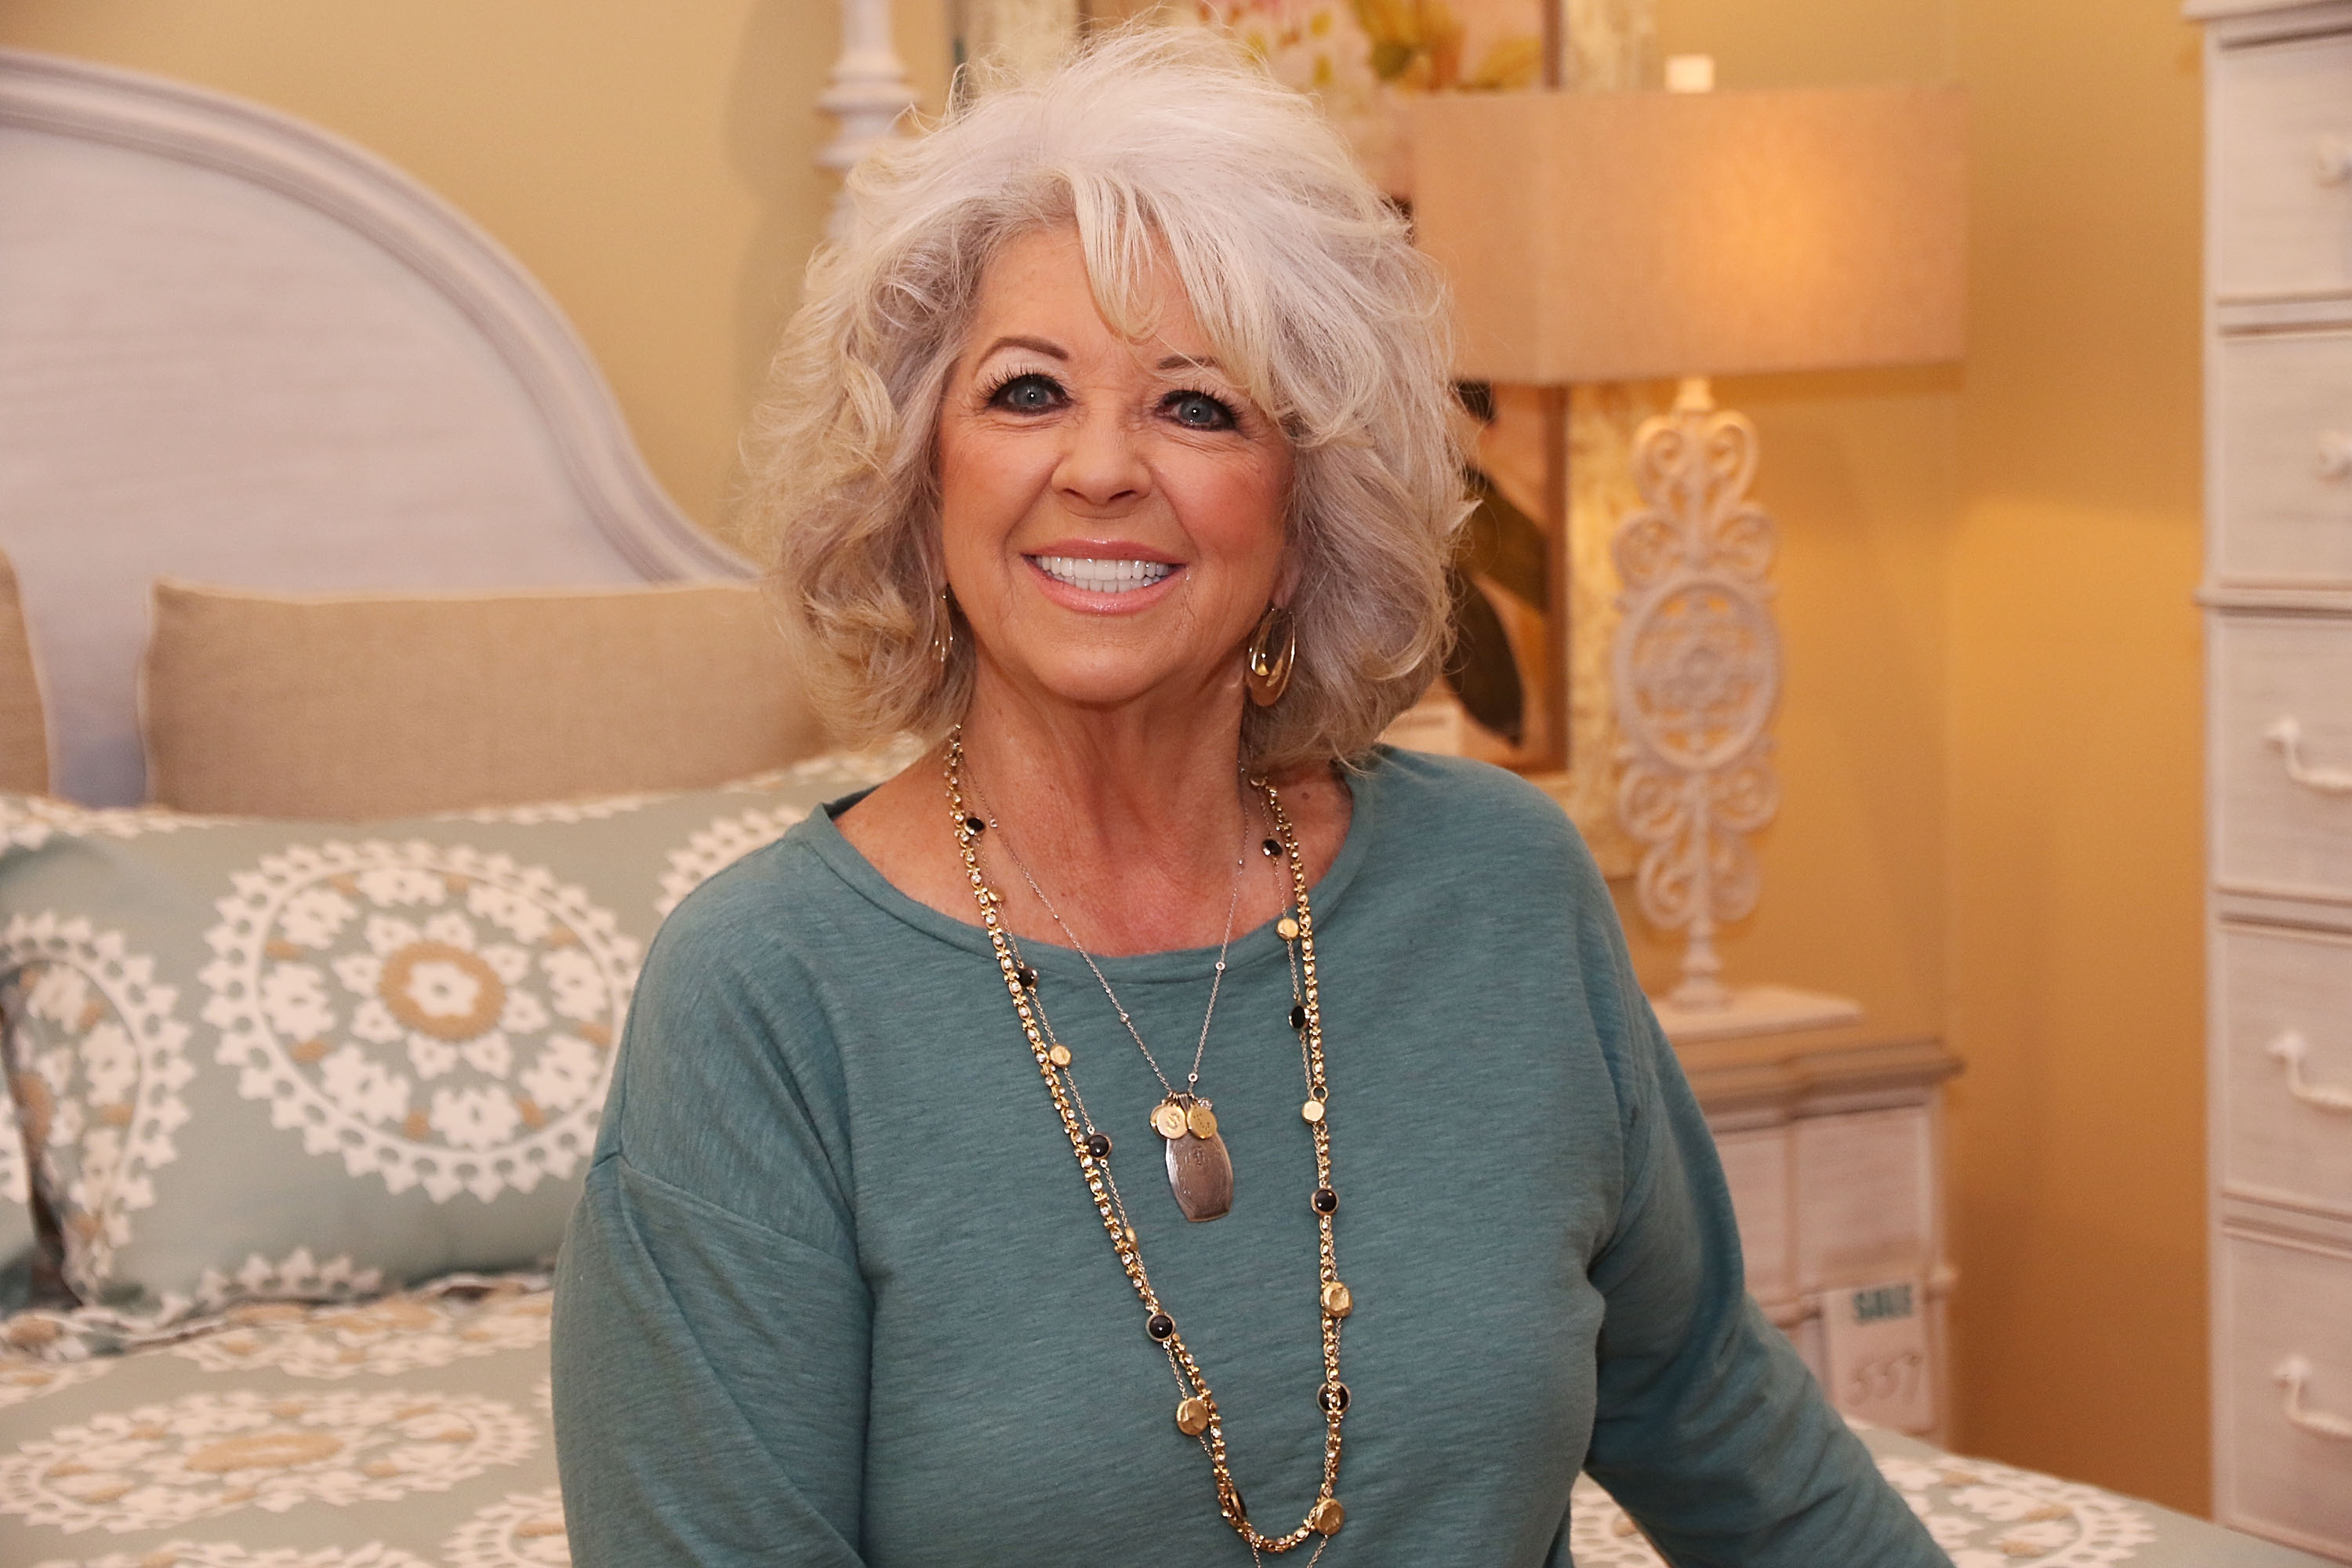 BOCA RATON, FL - JANUARY 30:  Paula Deen signs copies of her book during Cuts the Fat Book Tour on January 30, 2016 in Boca Raton, Florida.  (Photo by Aaron Davidson/Getty Images)